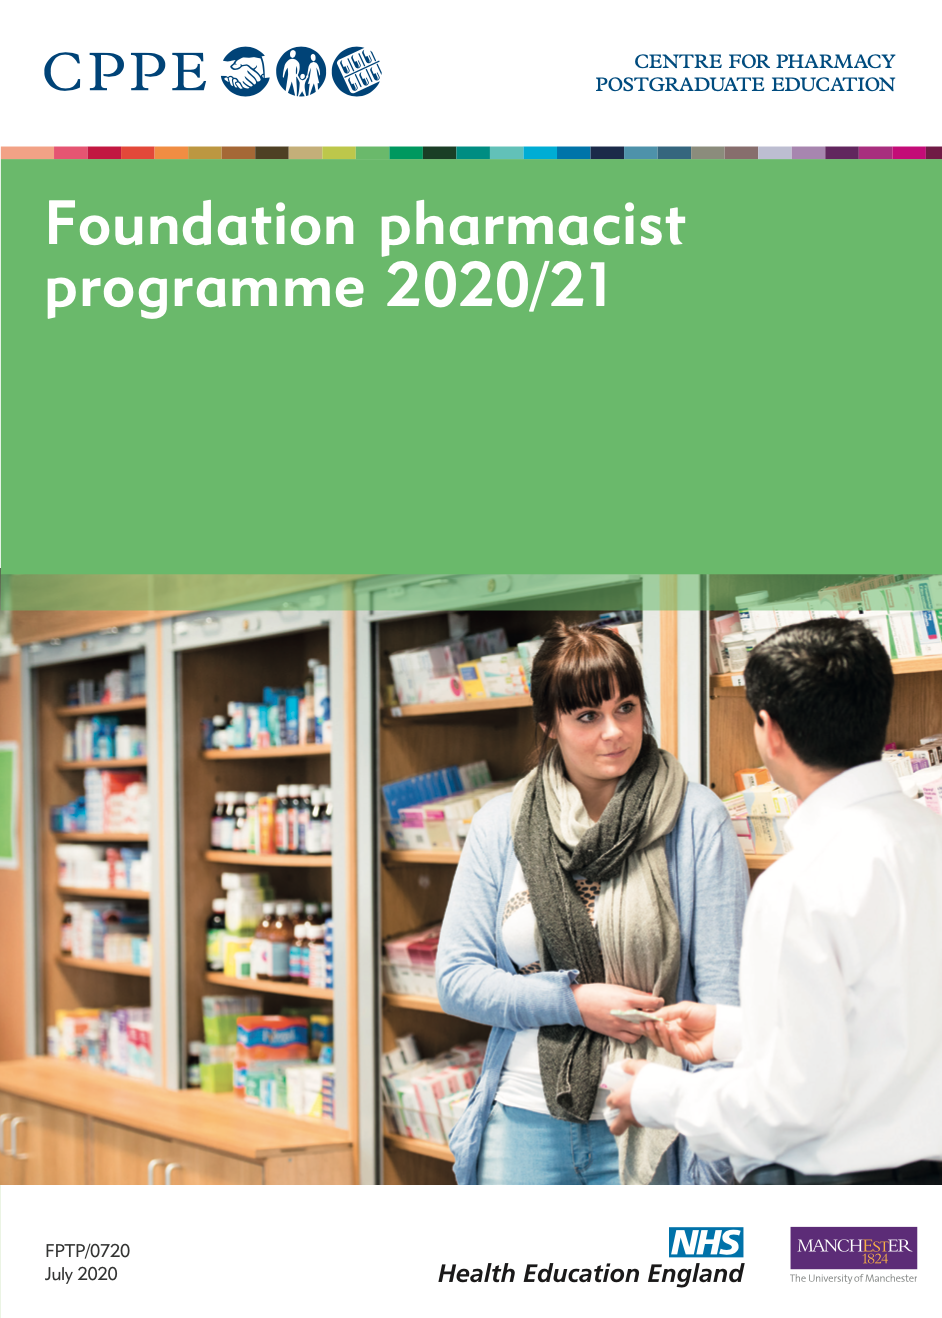 CPPE Foundation Pharmacist Programme 2020-21 leaflet.png